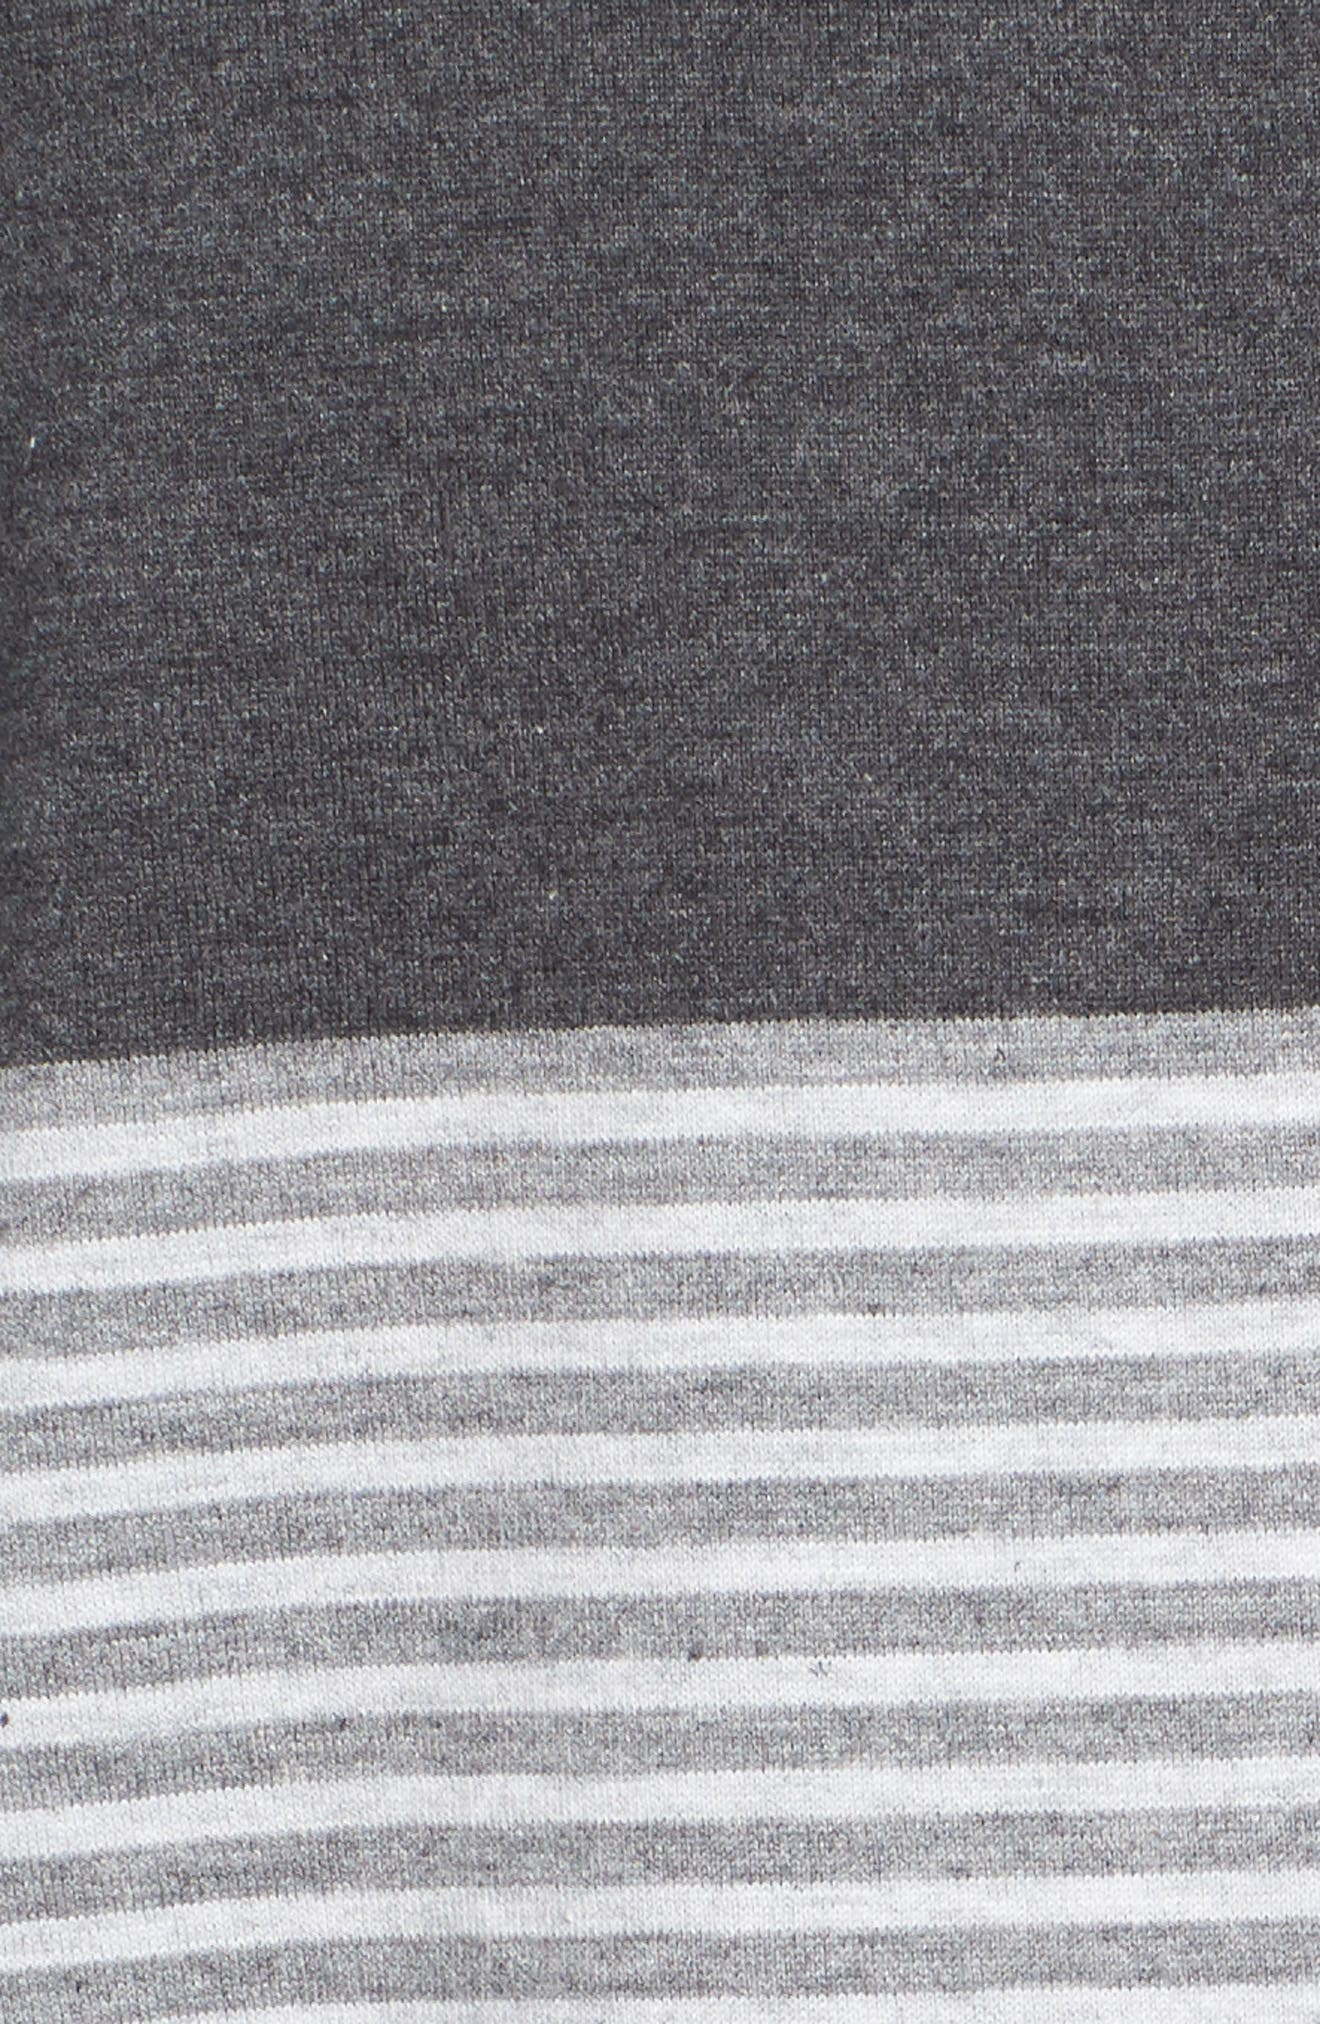 Baisch Regular Fit Polo,                             Alternate thumbnail 5, color,                             Heather Grey Pinstripe